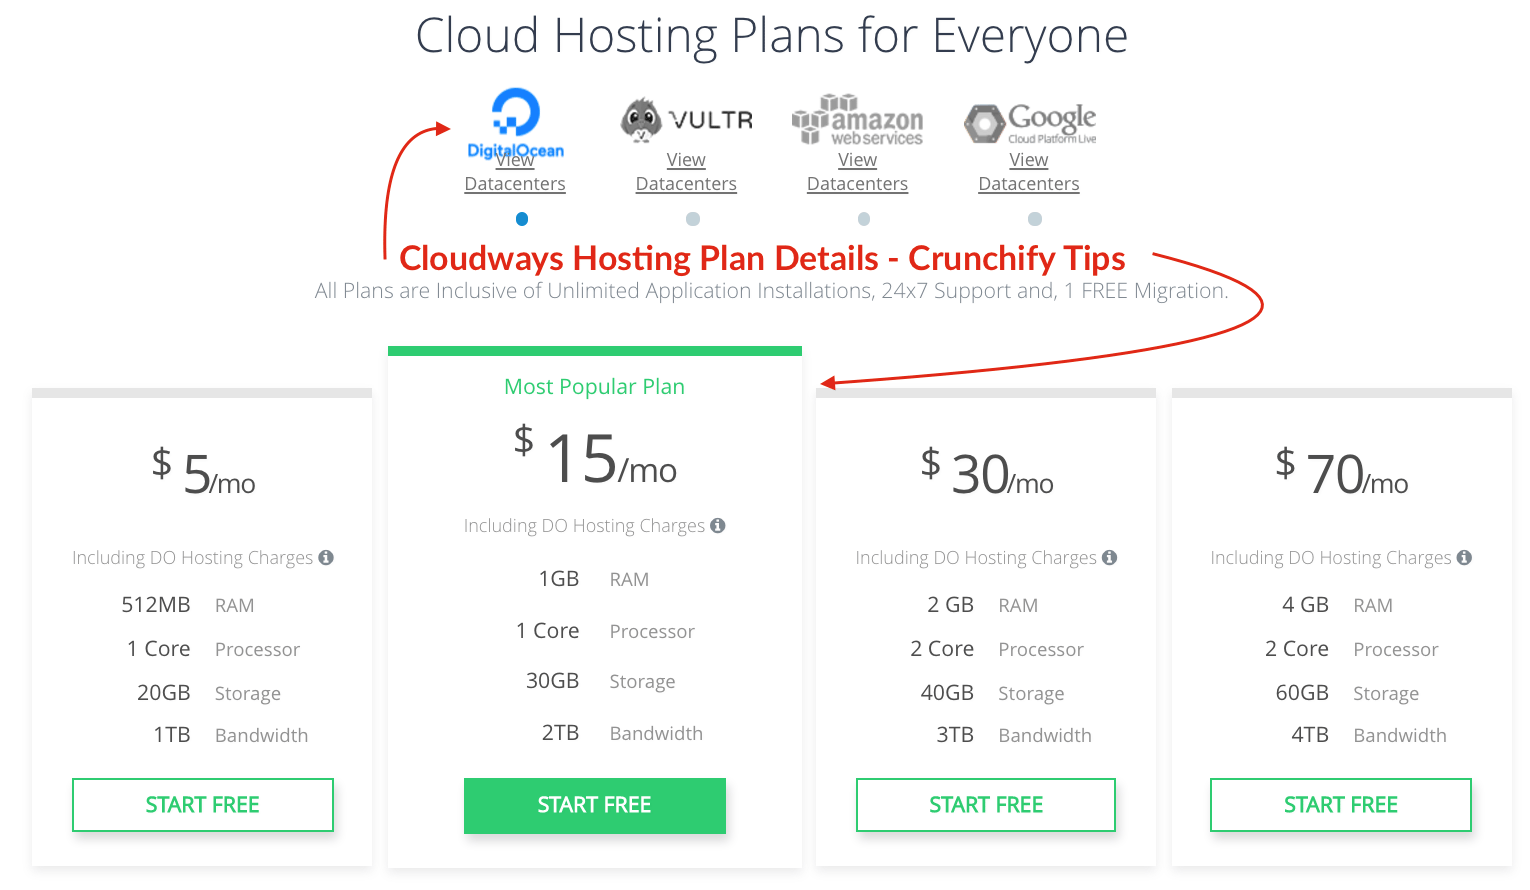 Cloudways Hosting Plan Details - Crunchify Tips